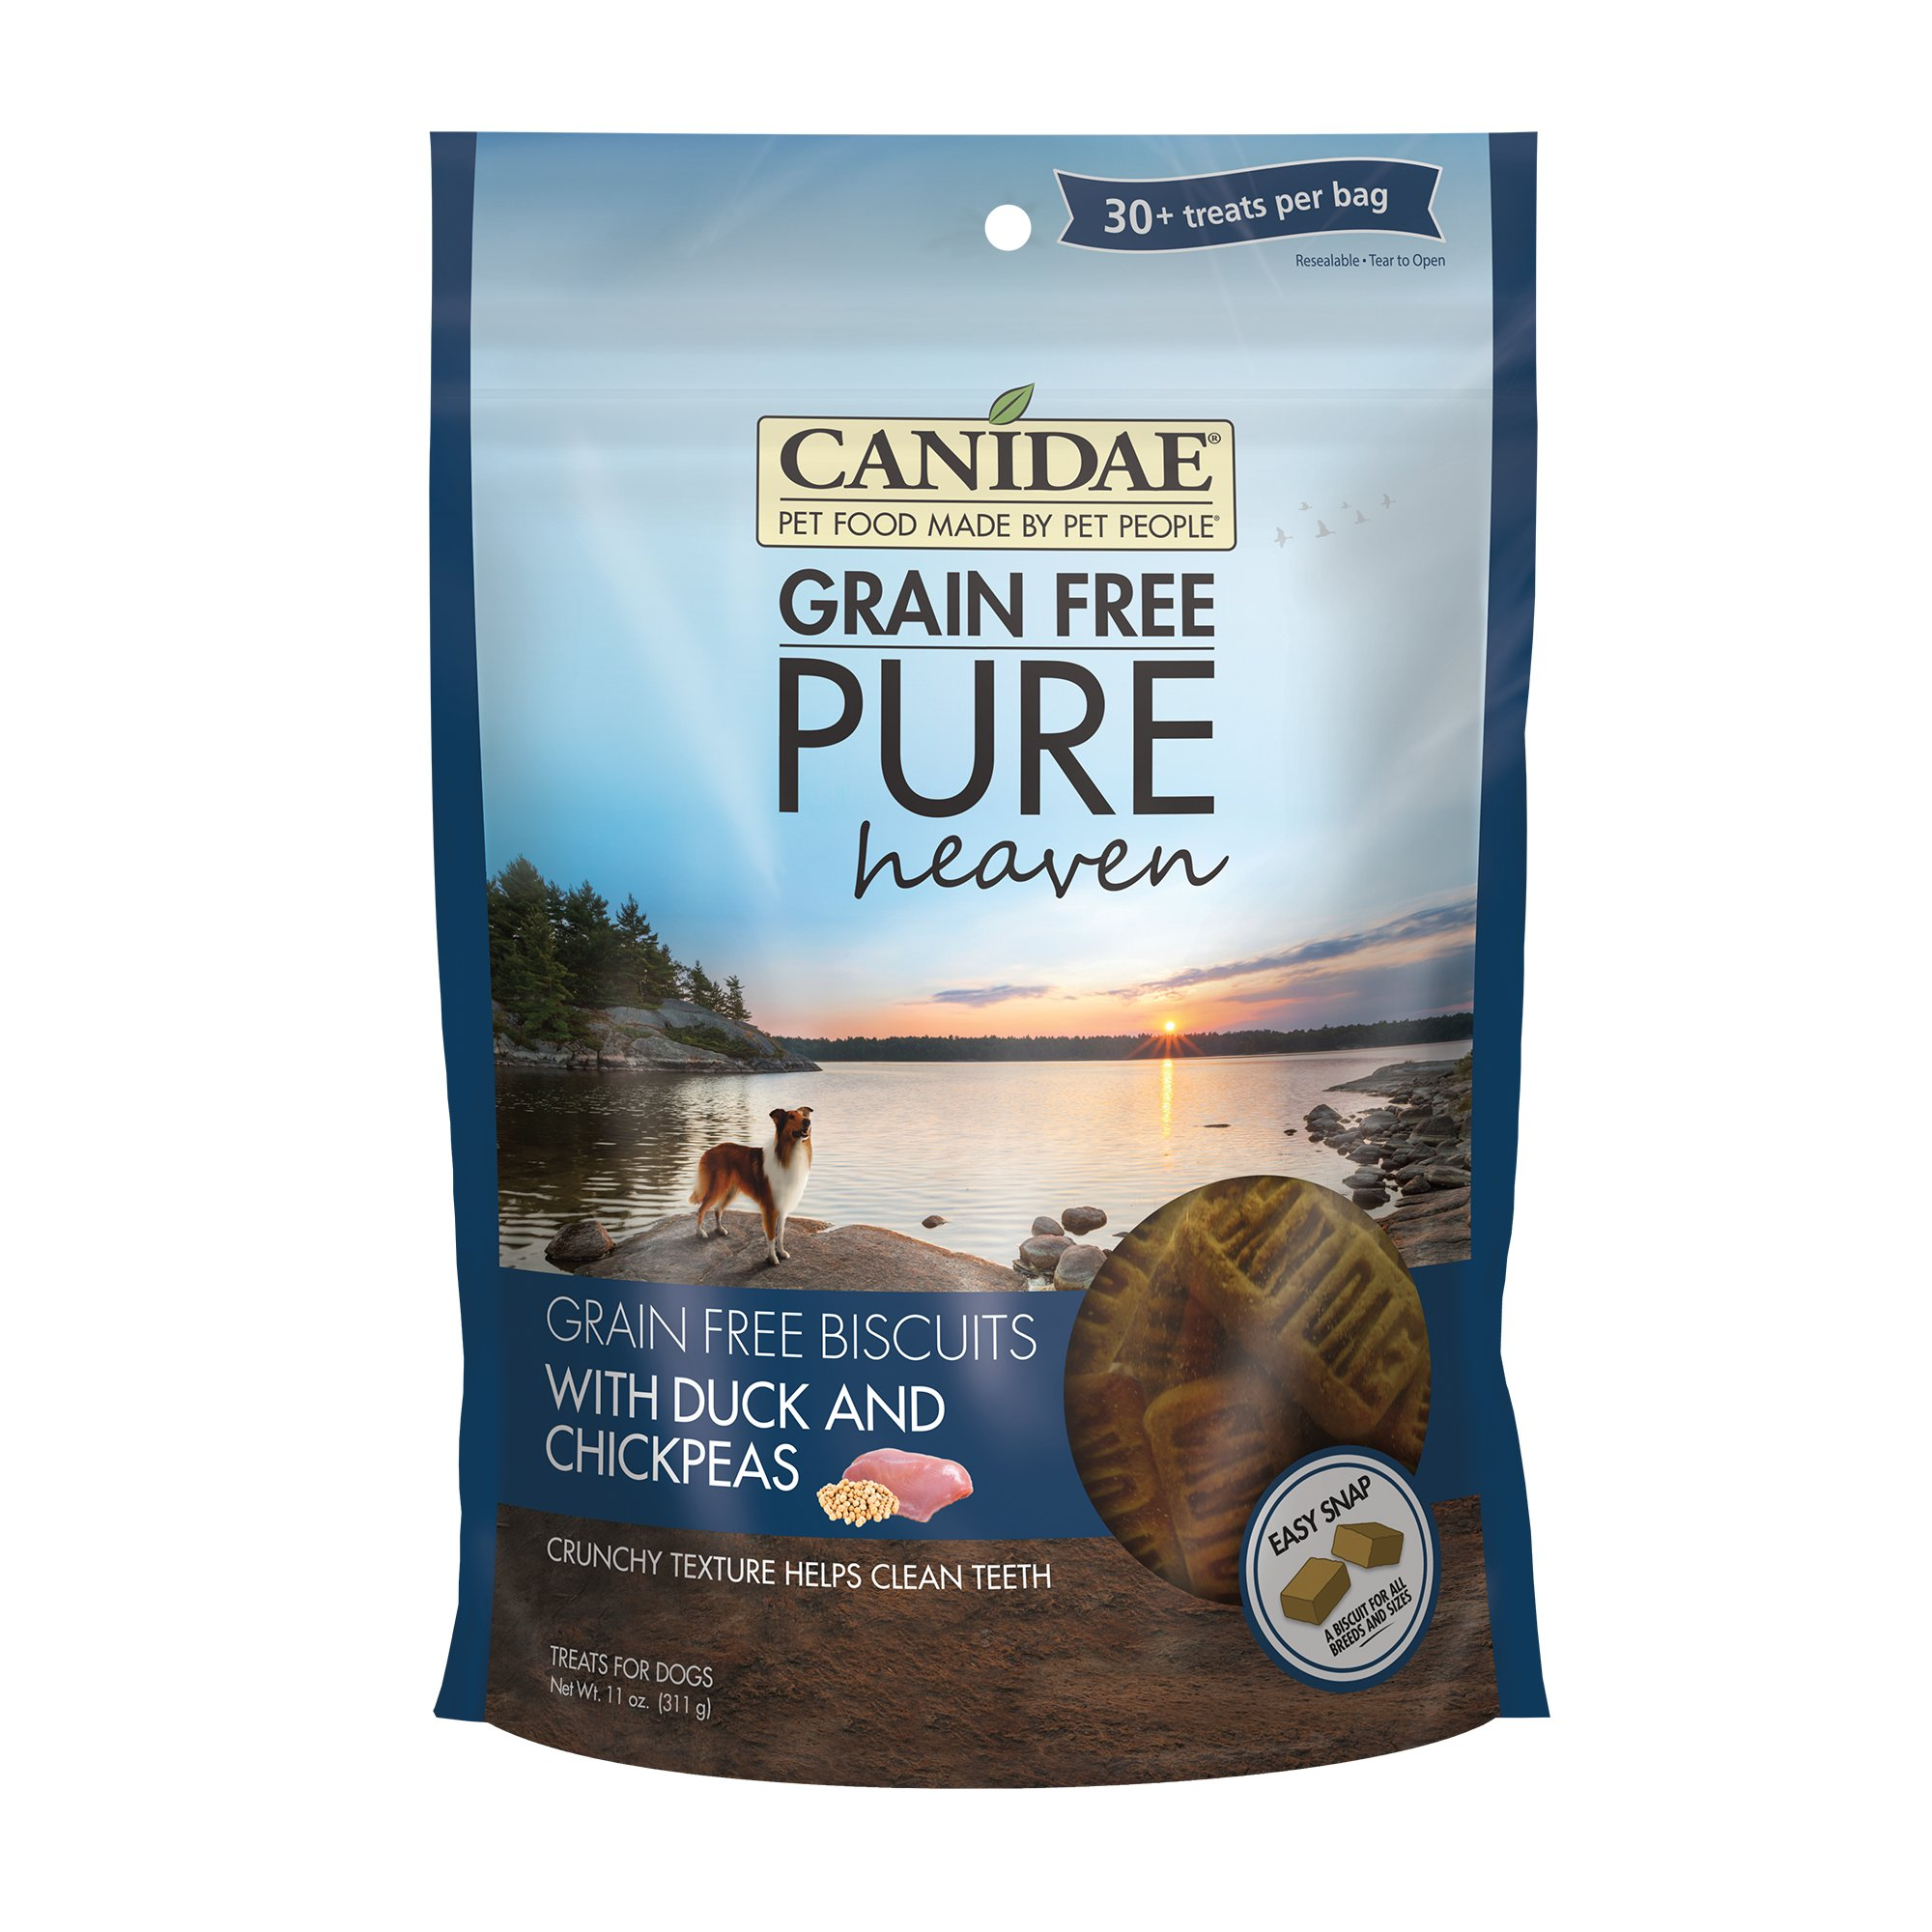 Canidae Grain Free Pure Heaven Duck & Chickpeas Dog Treats